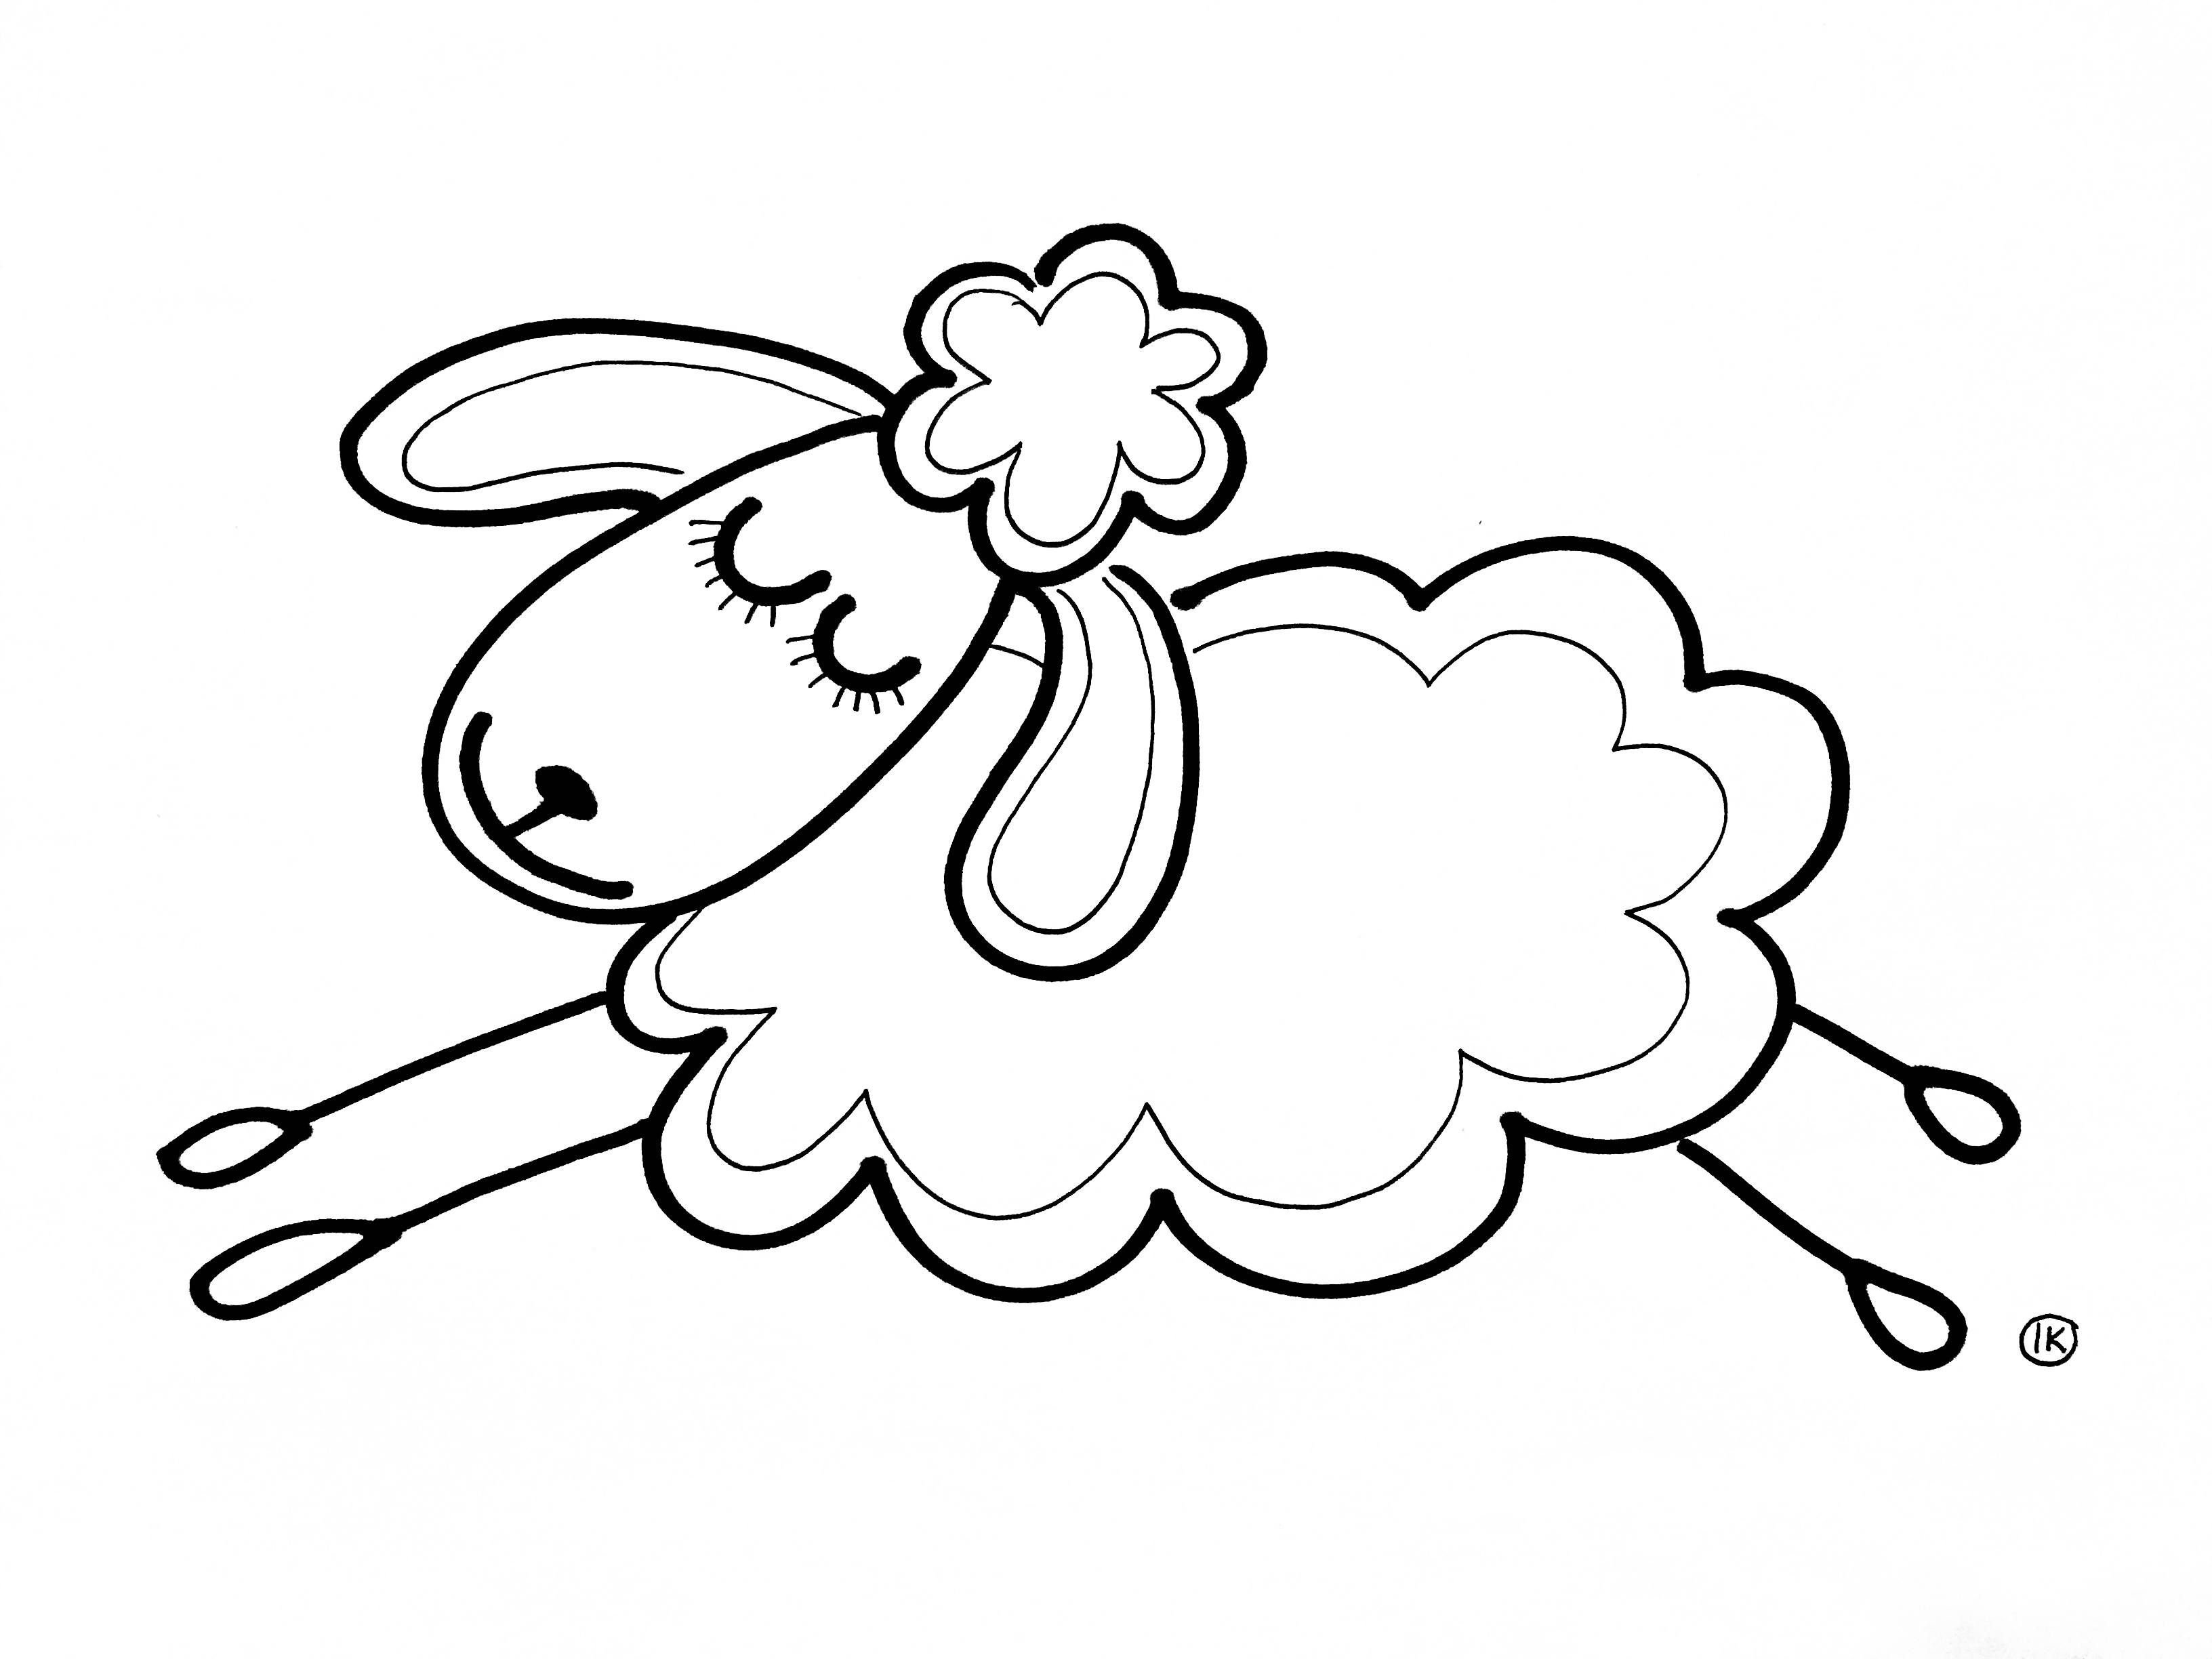 Coloring Sheep Spring Tinkering Creative Coloringpages Coloringpage De Knutseljuf Ede Sheep And Lamb Embroidery Patterns Sheep